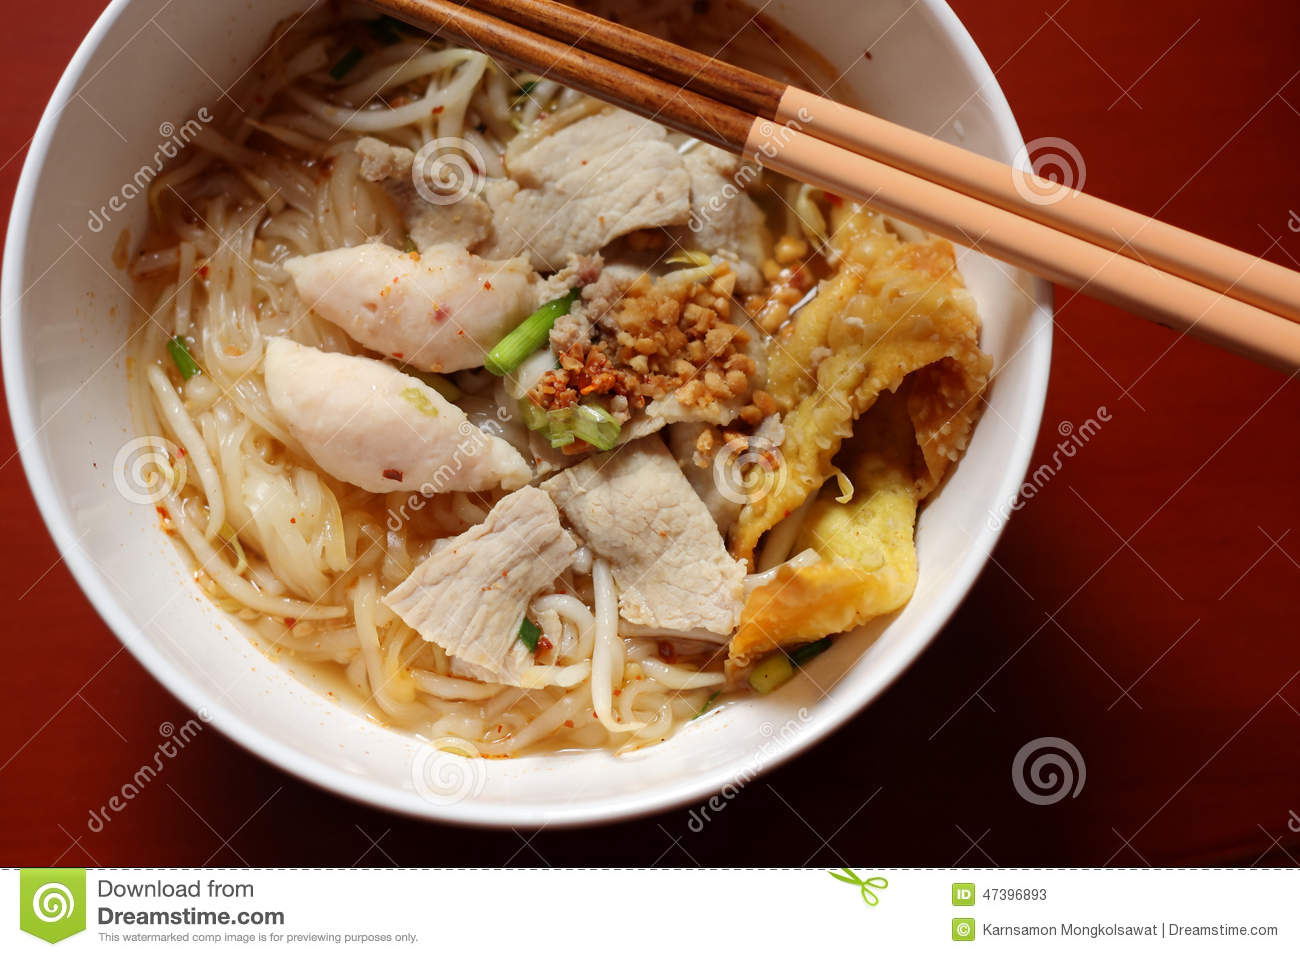 Asian Rice Noodle Soup With Pork, Fish Ball And Crisps Dumpling. Stock ...